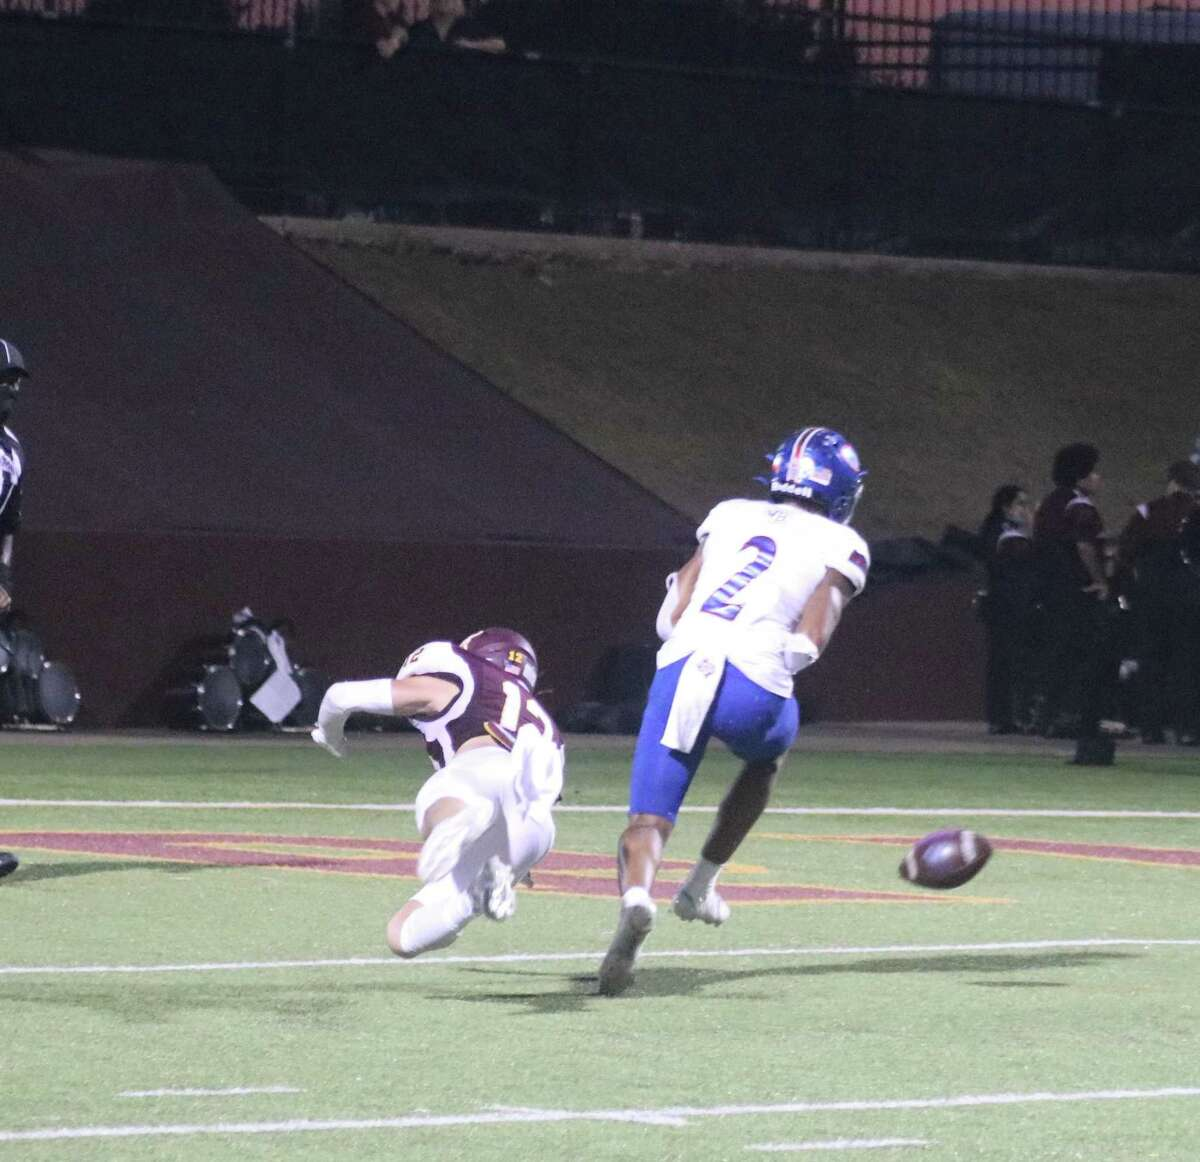 Deer Park's Jake Schaper finishes breaking up a deep pass to Beaumont West Brook's Andre Dennis near the end zone Friday night. Dennis became the hero for the Bruins in the second half when he caught a short pass and turned it into a 99-yard sprint to the end zone.